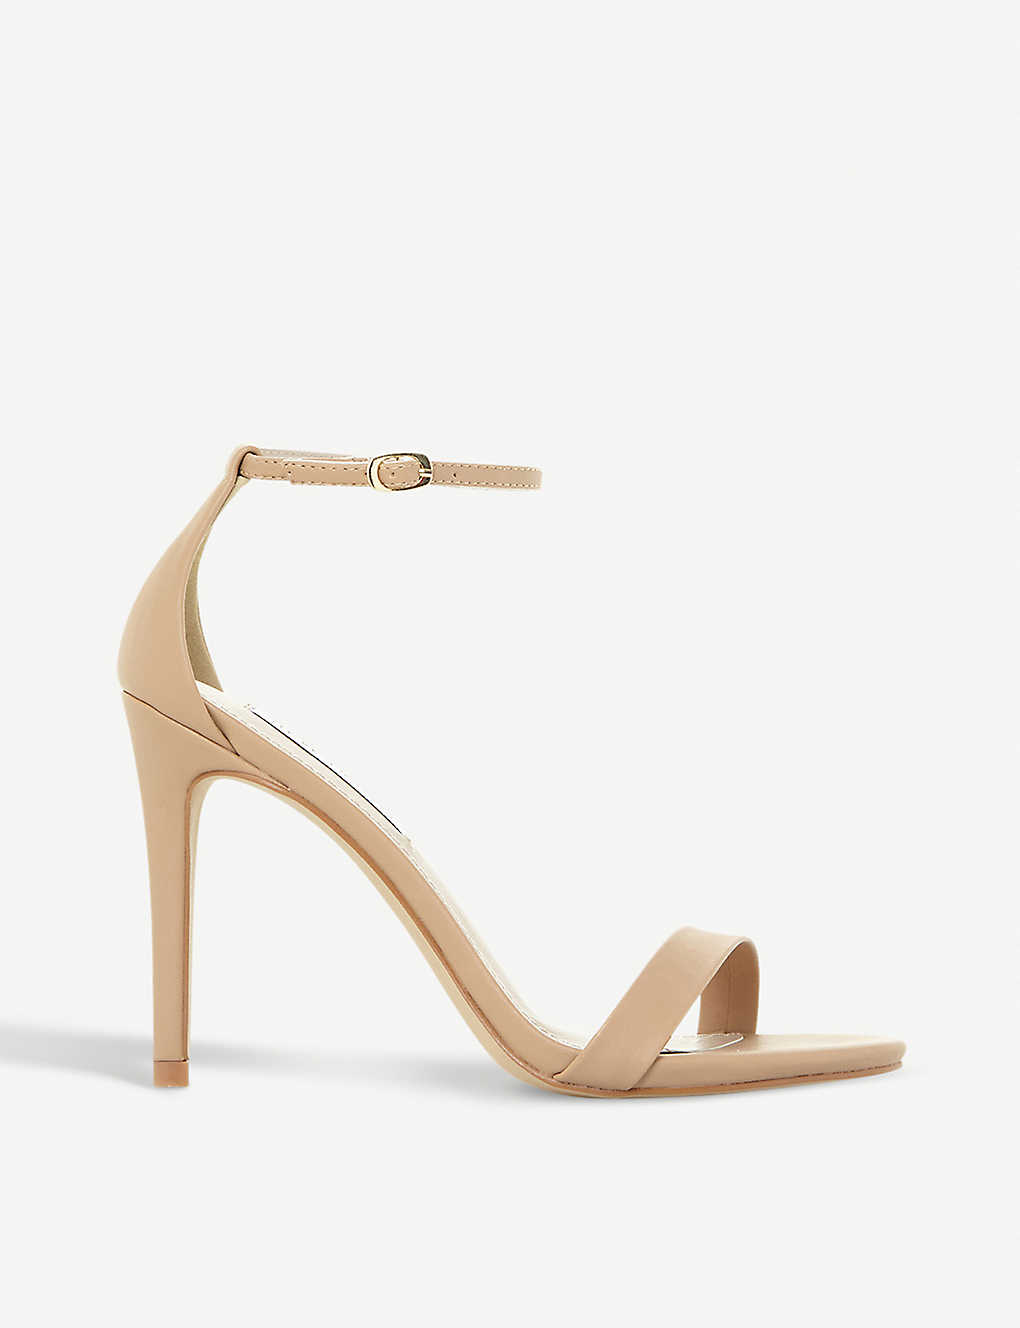 ac0cd73f28 STEVE MADDEN - Stecy SM faux-leather heeled sandals | Selfridges.com